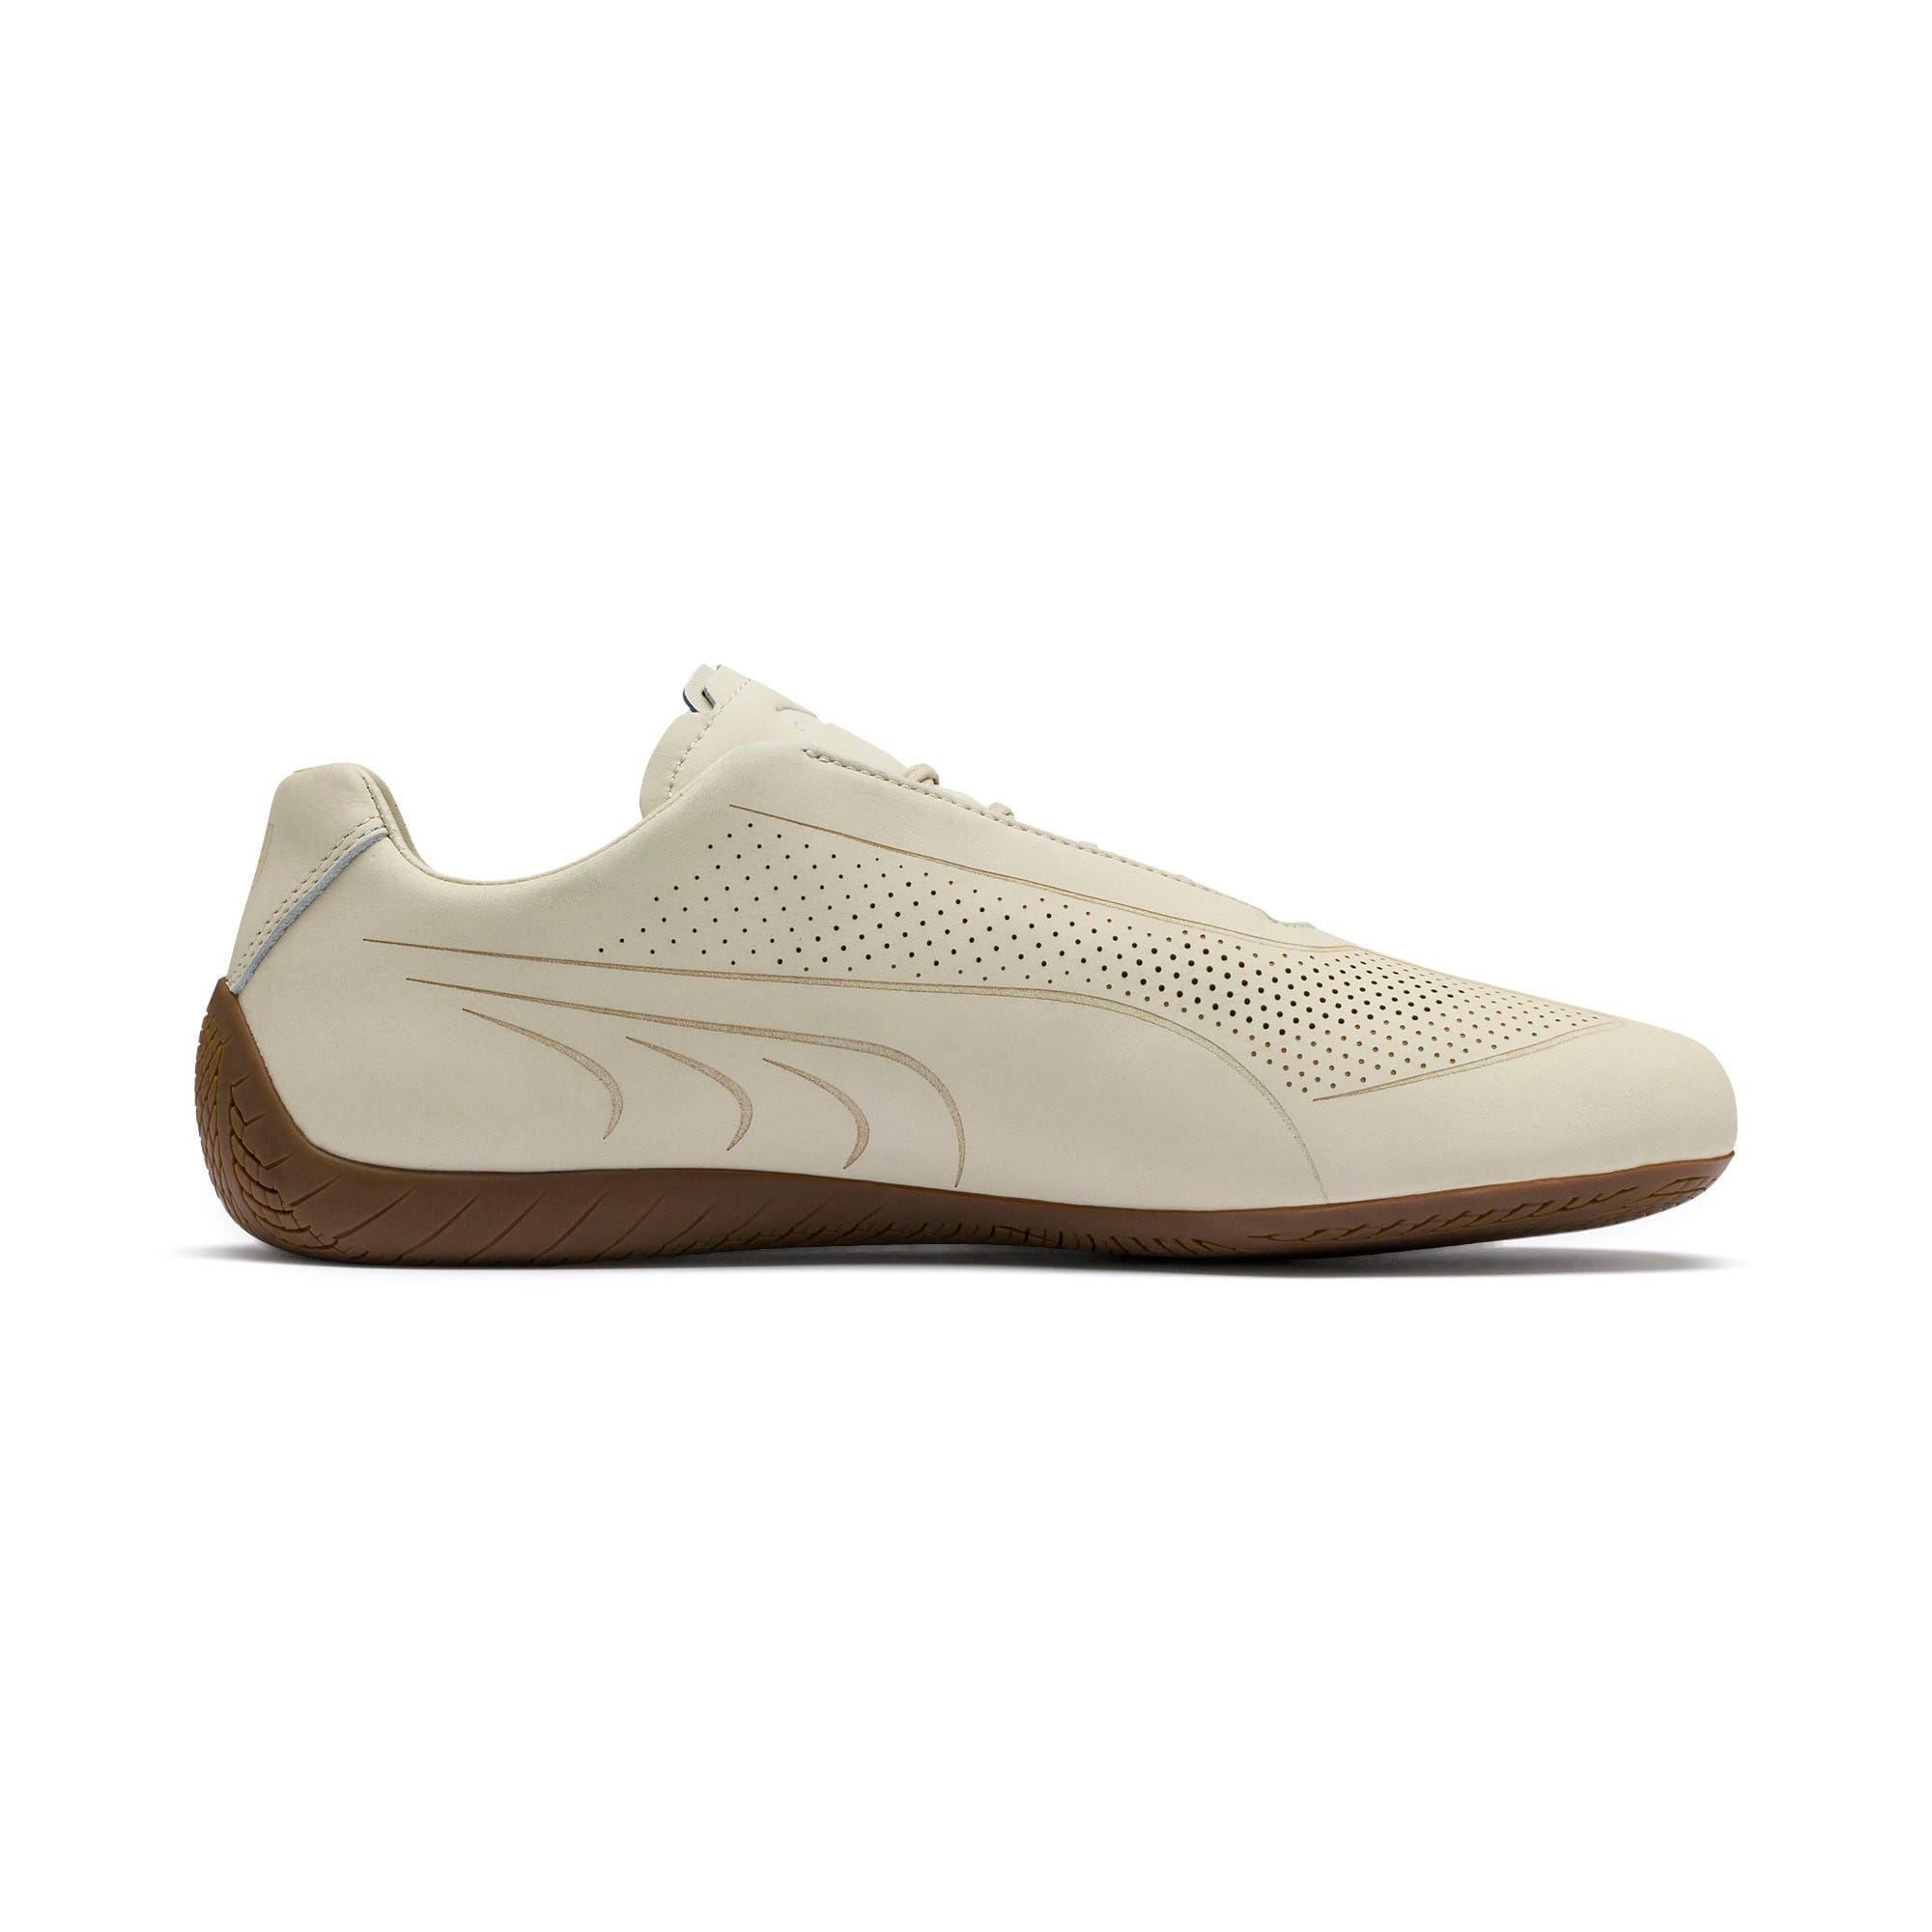 puma homme definition